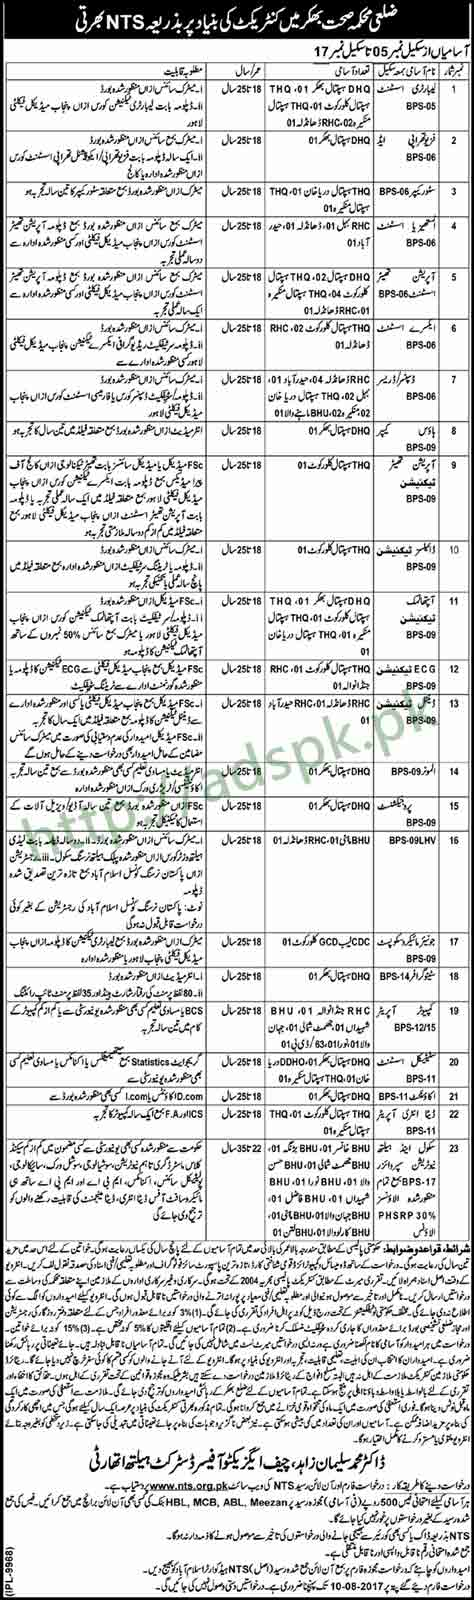 NTS Jobs Health Department District Health Authority Bhakkar DHQ THQ Hospitals Jobs 2017 BPS-05 to BPS-17 Written Test MCQs Syllabus Paper Laboratory Assistant Physiotherapist Store Keeper Anesthesia Assistant O.T Assistant X-Ray Assistant Dispenser Dresser House Keeper O.T Technician Dialysis Technician Ophthalmic Technician ECG Technician Dental Technician Almoner Projectionist LHV Junior Microscopist Stenographer Computer Operator Statistical Assistant Accountant Data Entry Operator School & Health Nutrition Supervisor NTS Jobs Application Form Deadline 10-08-2017 Apply Now by NTS Pakistan